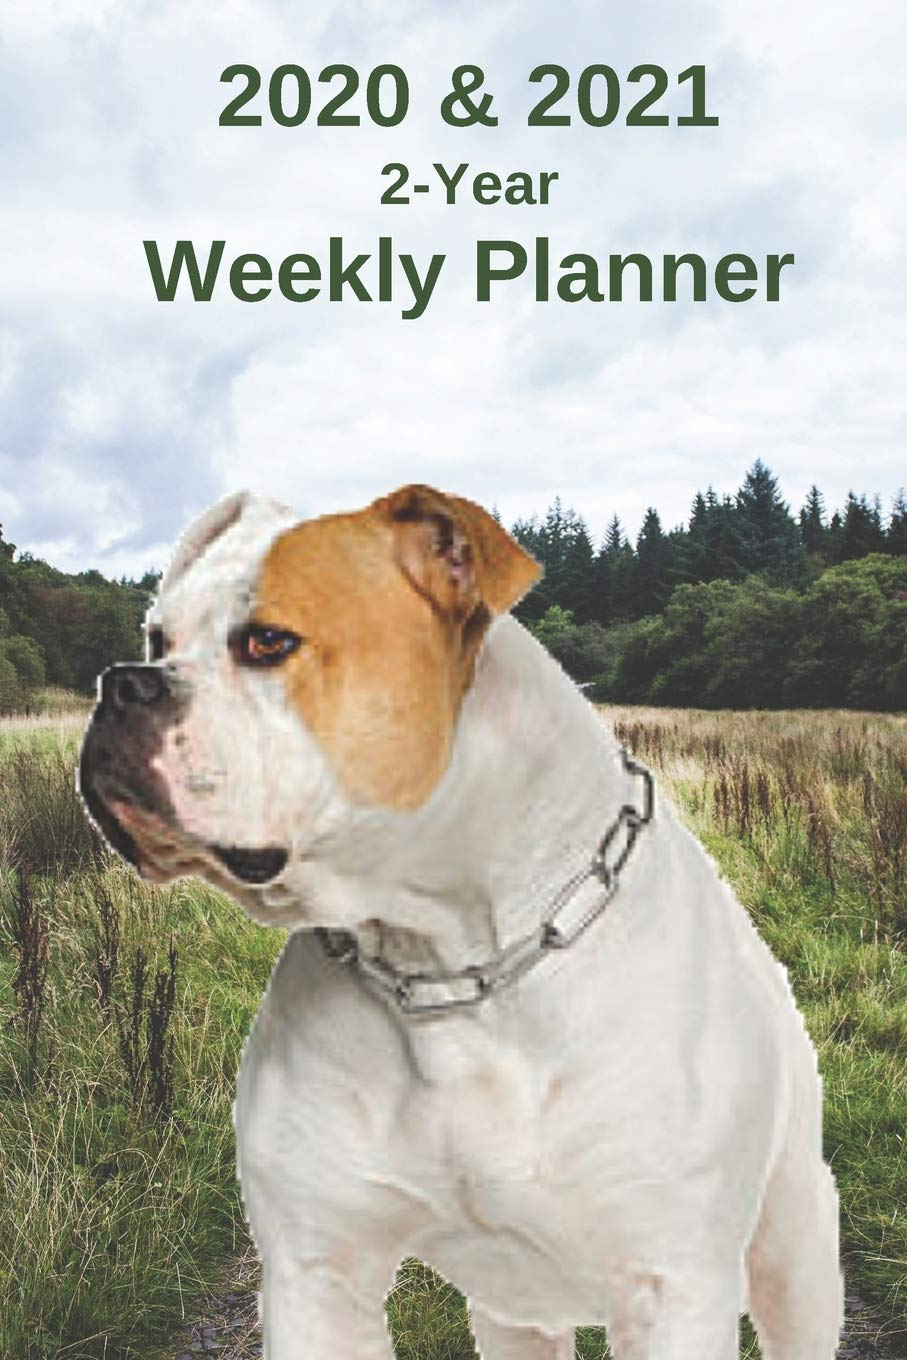 2020 & 2021 Weekly Planner | Two Year Appointment Book Gift | Two-Year Agenda Notebook for American Bulldog Owners…